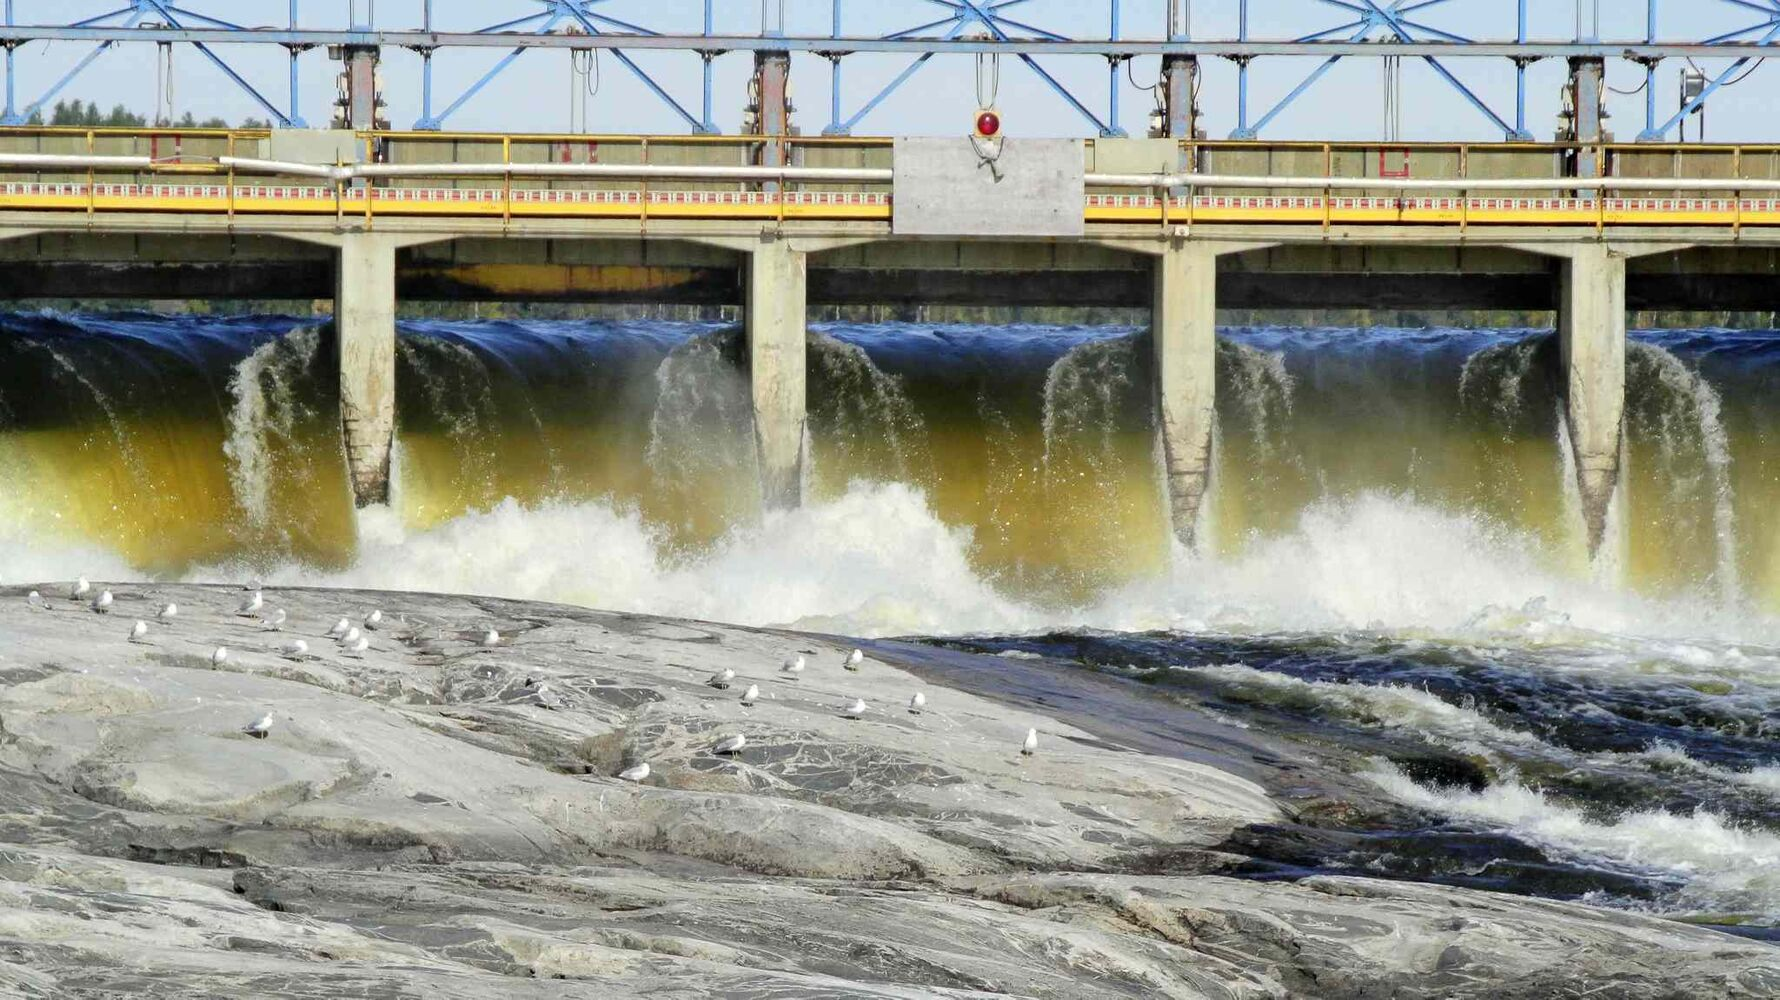 The old spillway allows water through, but the mechanics on controlling the water is over 100 years old and very dangerous for employees who manage the dam.  MIKE DEAL / WINNIPEG FREE PRESS